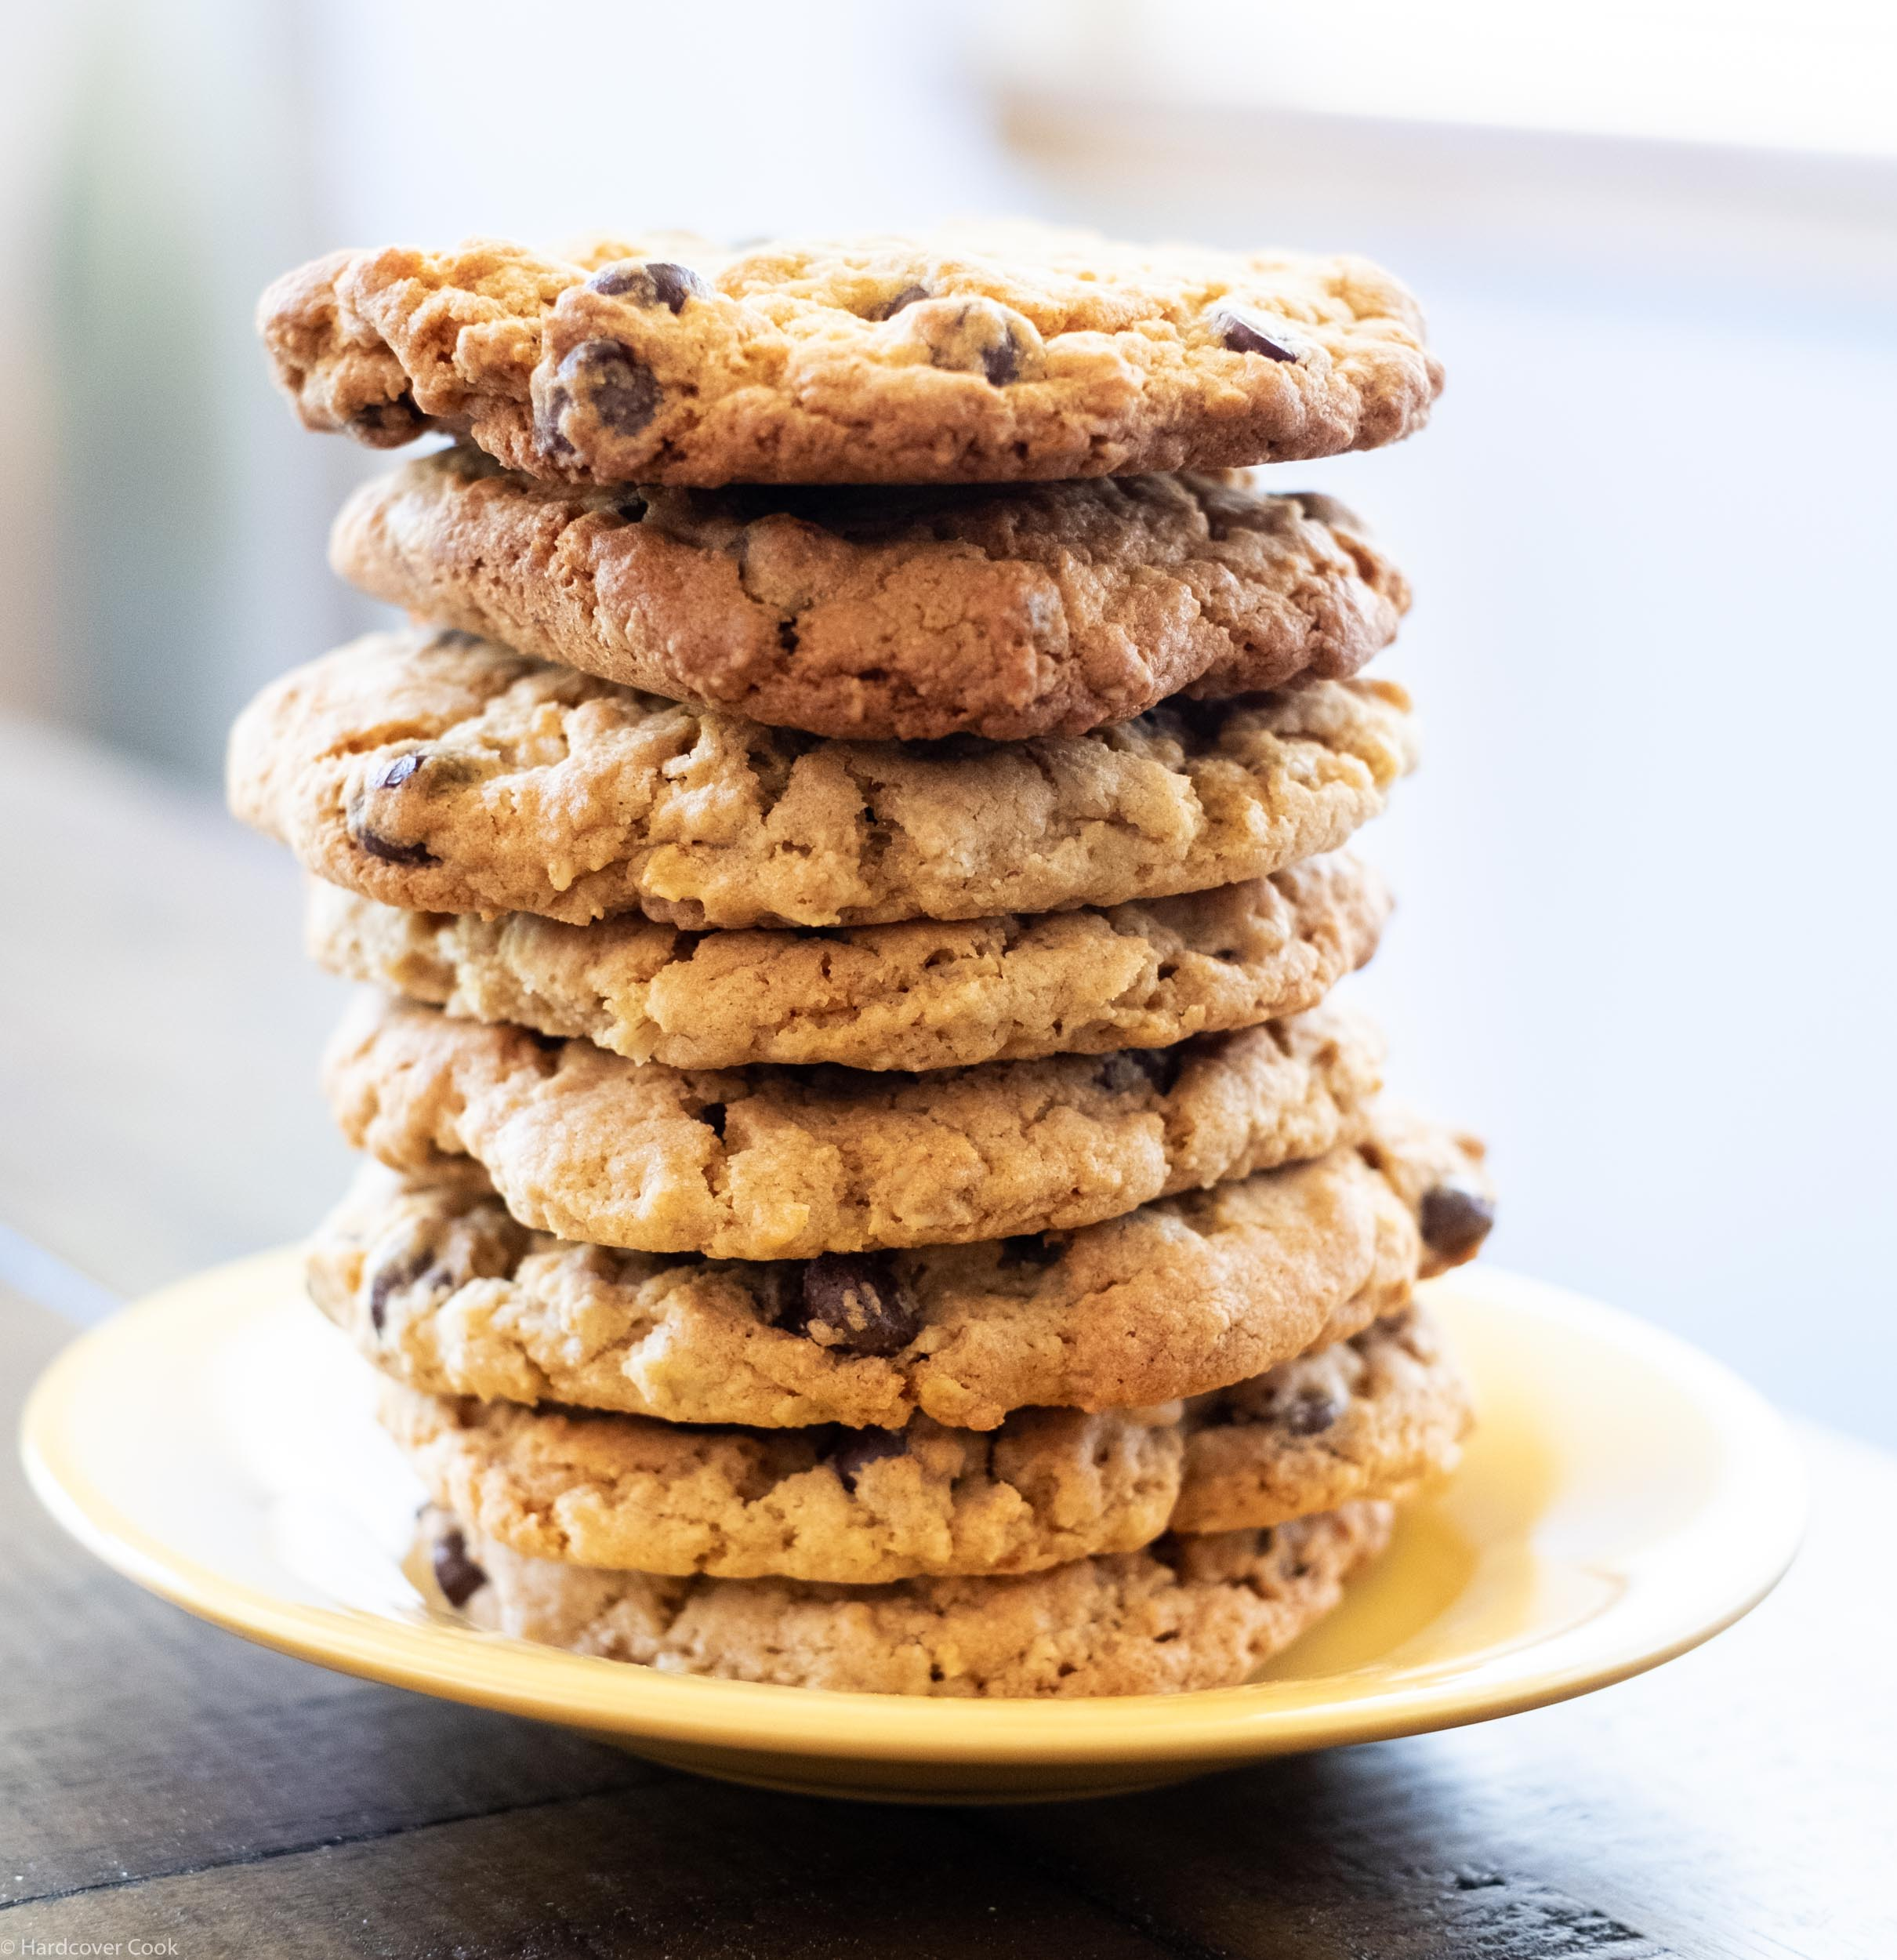 miso-sesame-chocolate-chip-cookies-from-double-awesome-chinese-food-stacked.jpg